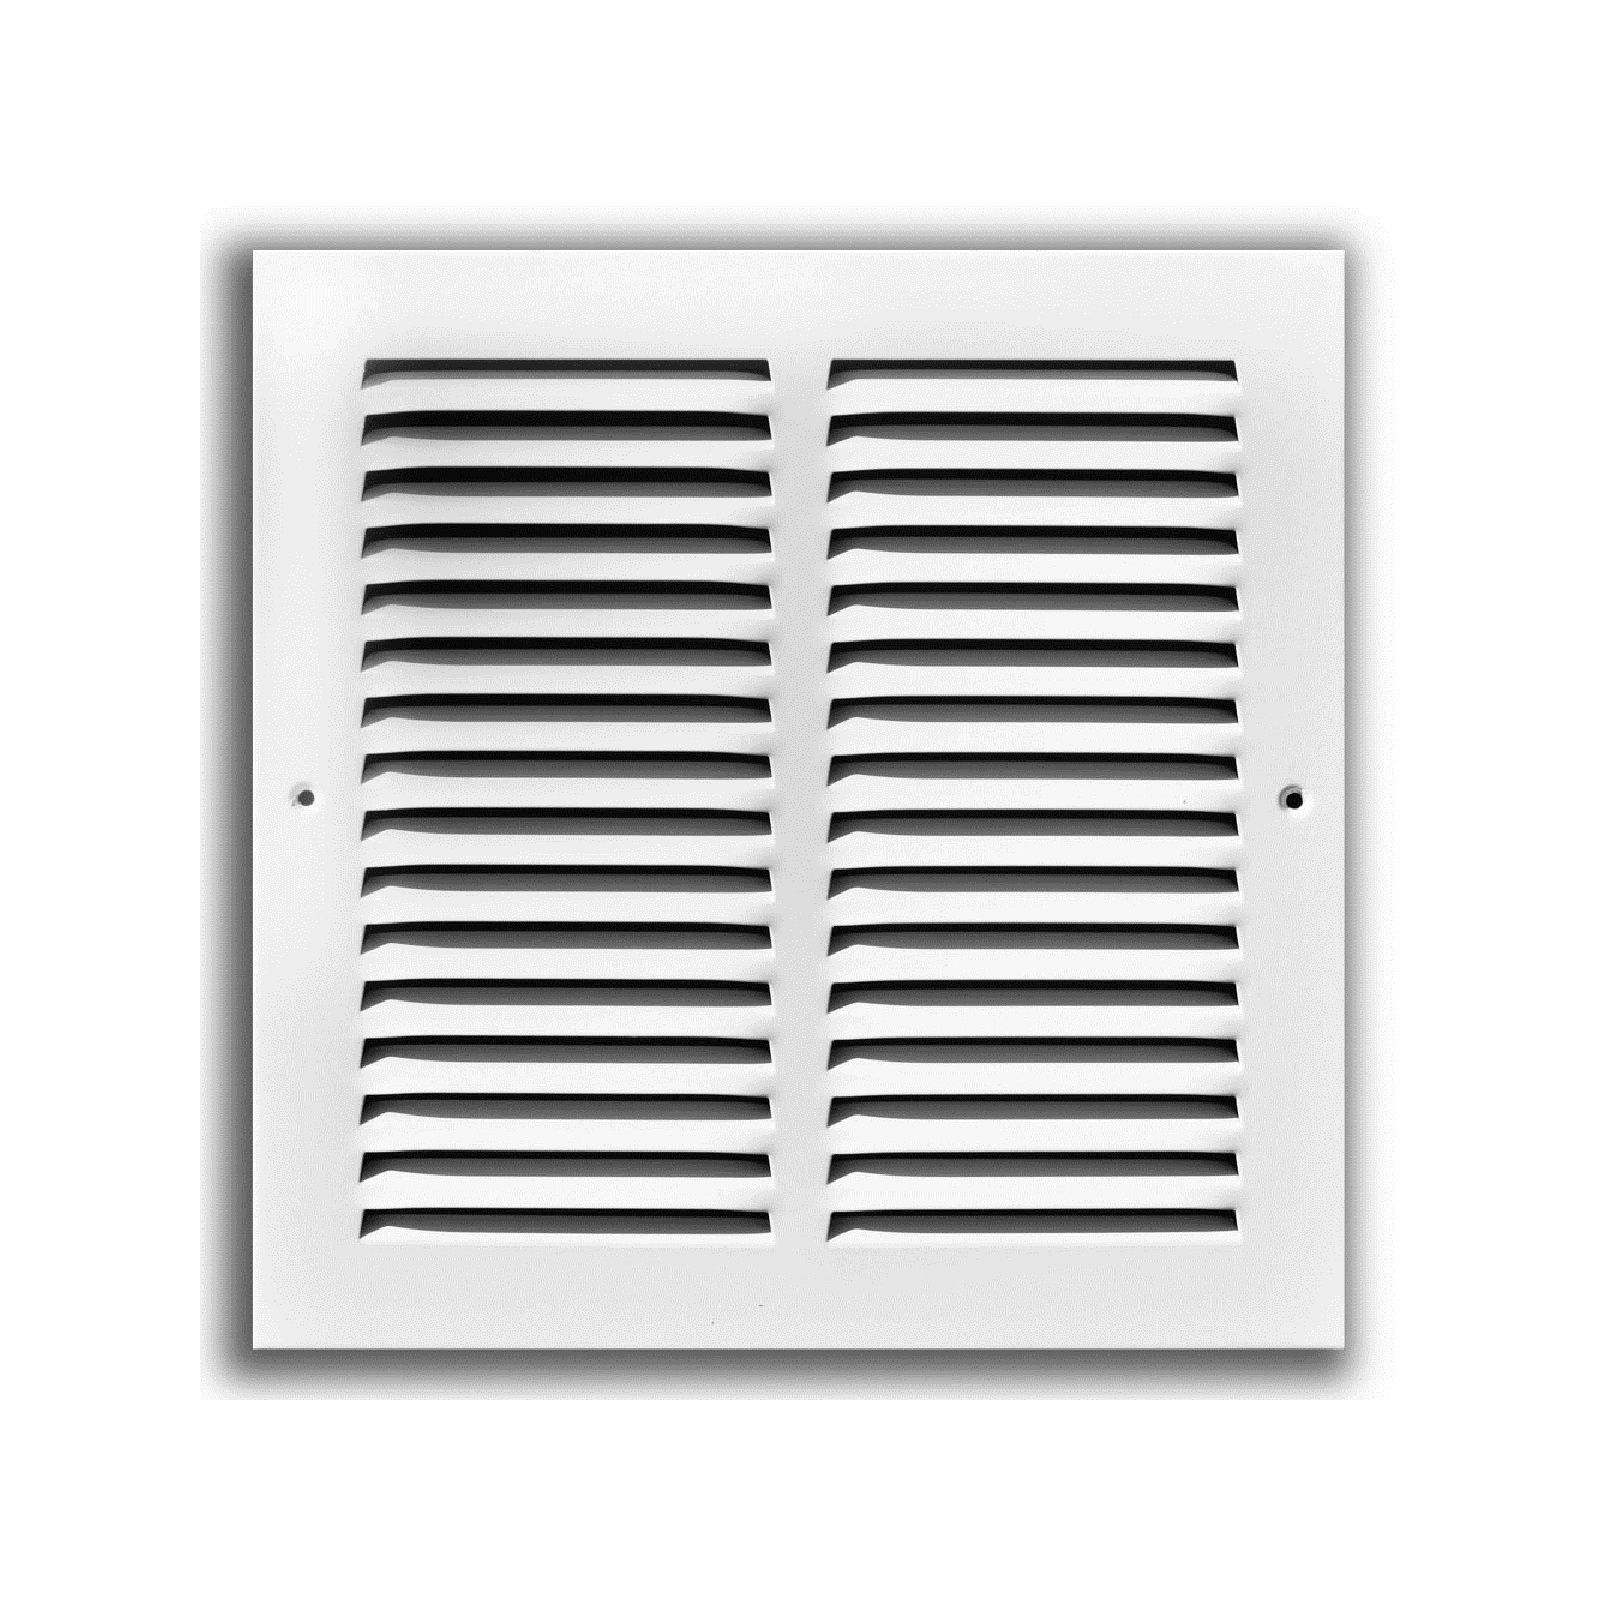 "TRUaire 170 14X20 - Steel Return Air Grille - 1/2"" Spaced Fin, White, 14"" X 20"""